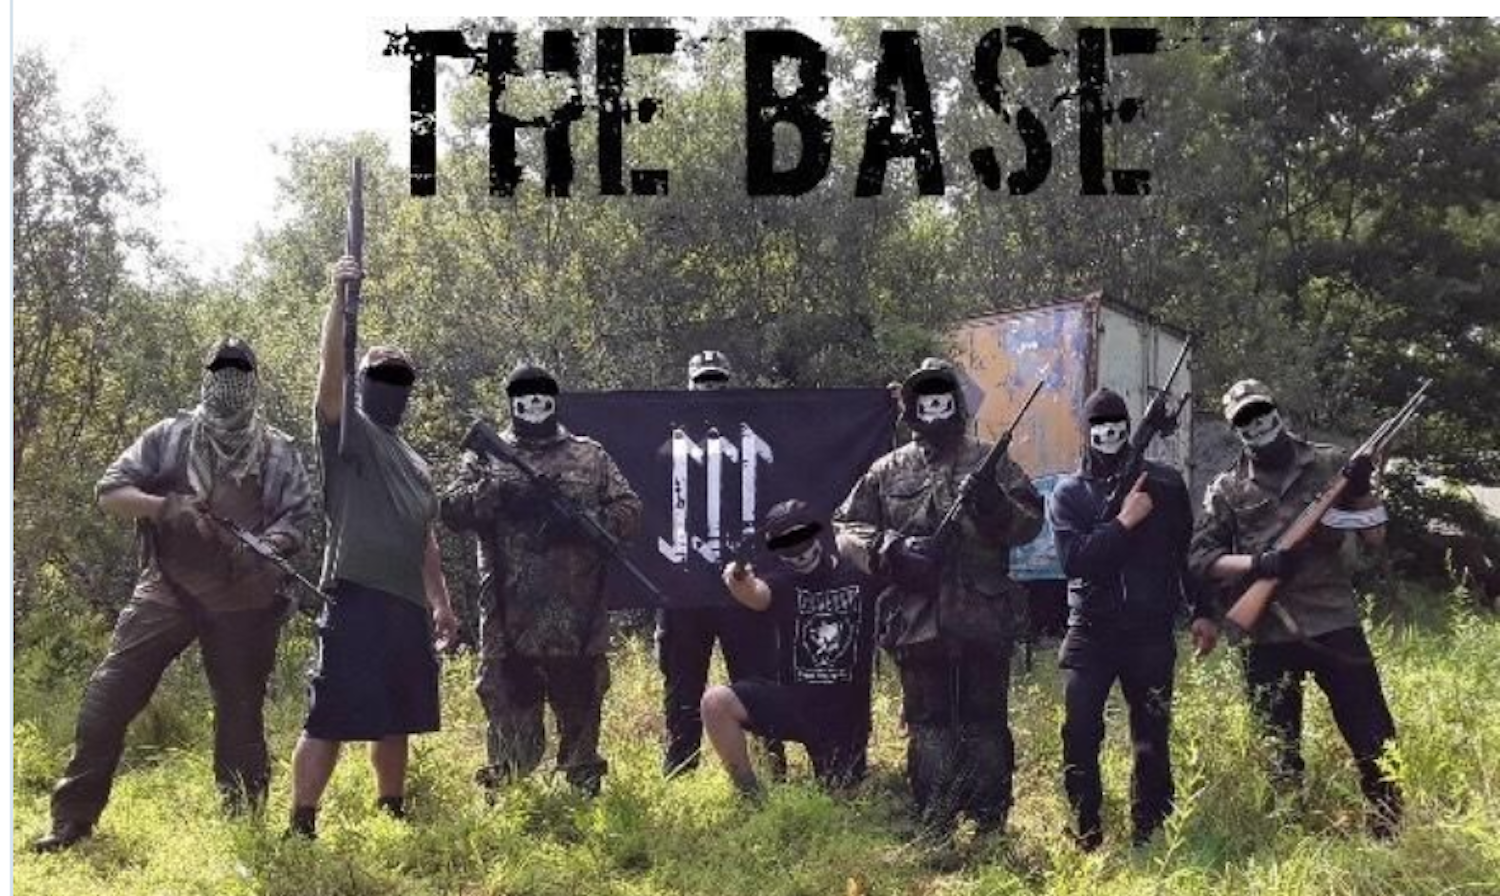 New Paramilitary Training Video Emerges of Neo-Nazi Terror Group